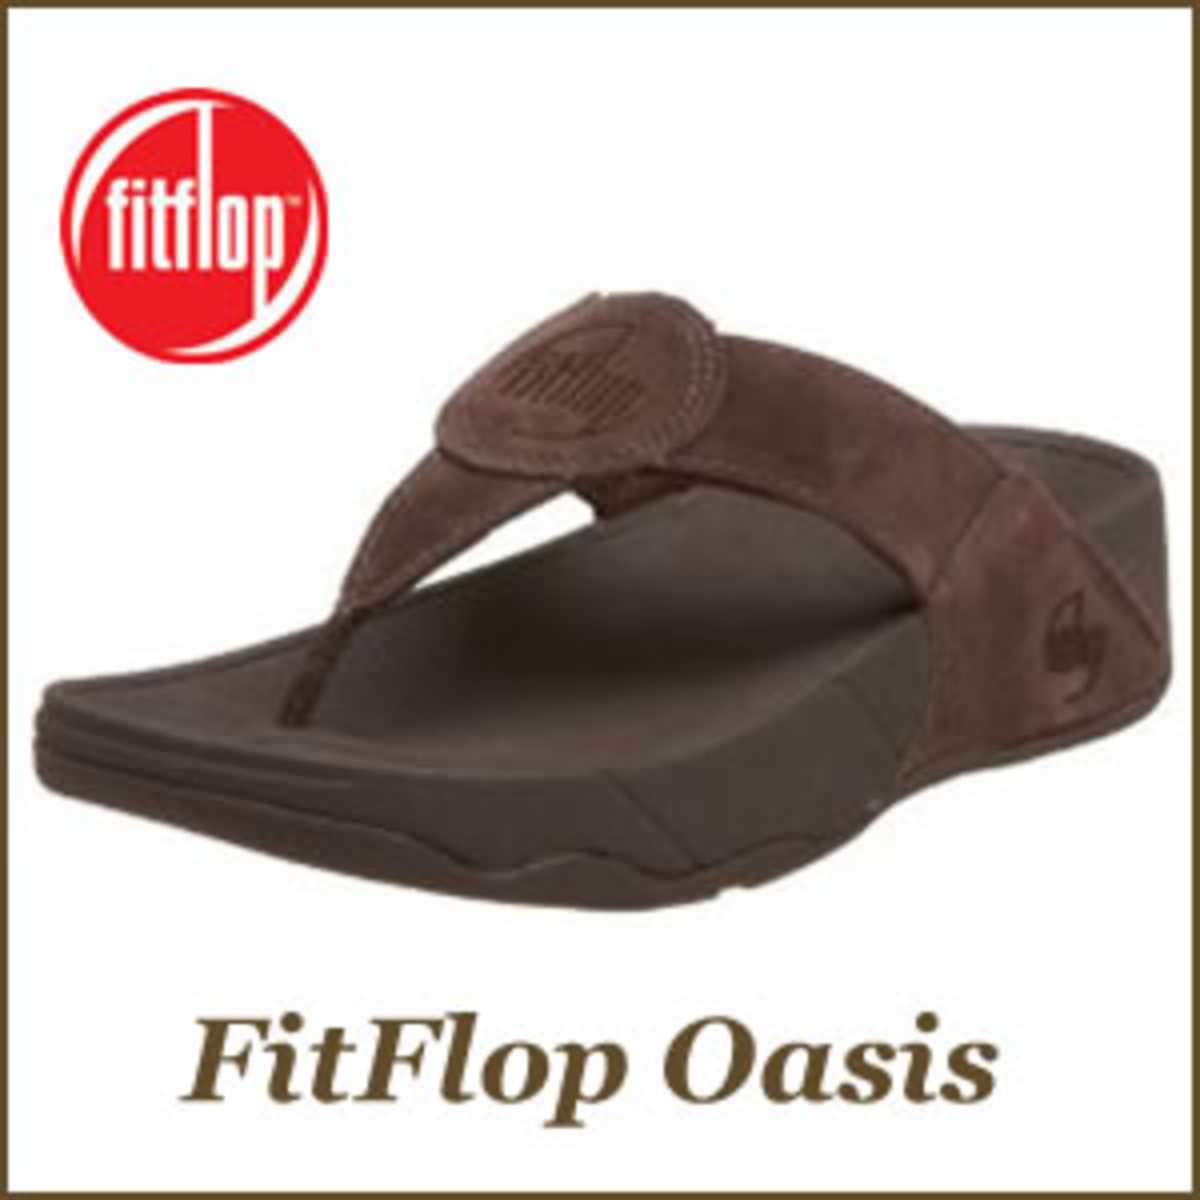 One of the many stylish FitFlop sandals available